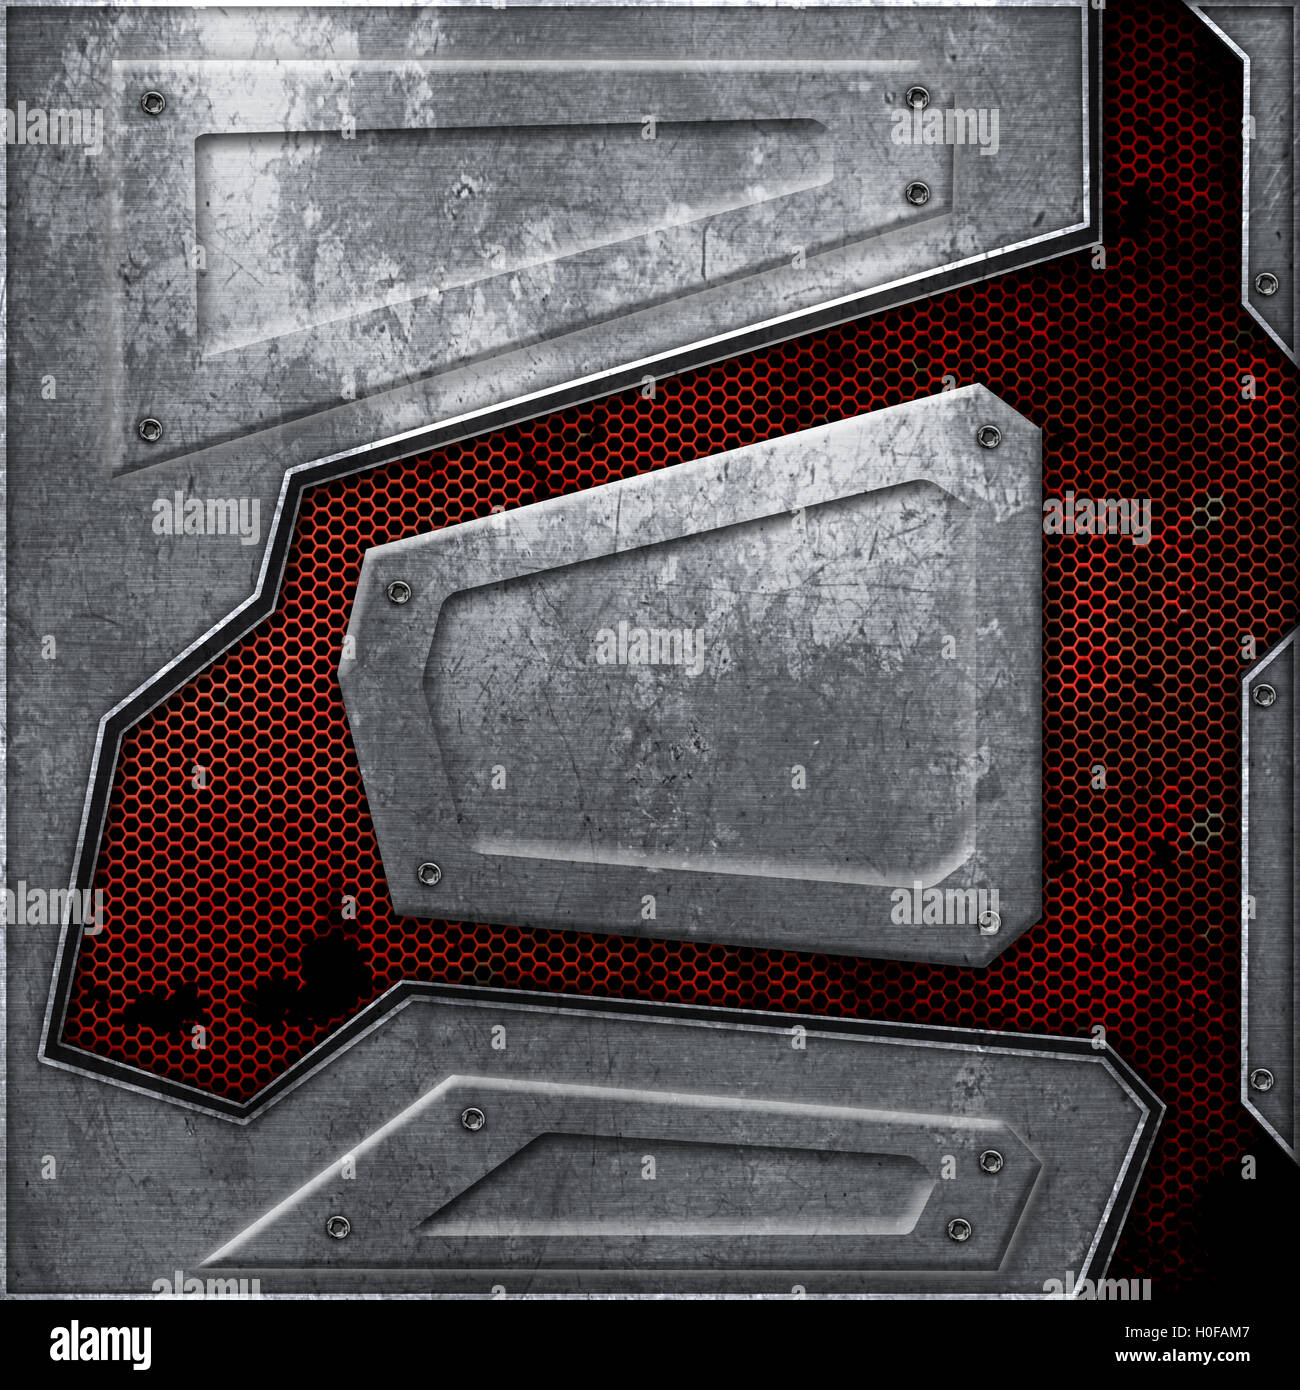 sci fi wall texture. Plain Wall Scifi Wall Rust Metal Wall And Red Mesh Background Texture 3d  Illustration Technology Concept Intended Sci Fi Wall Texture C